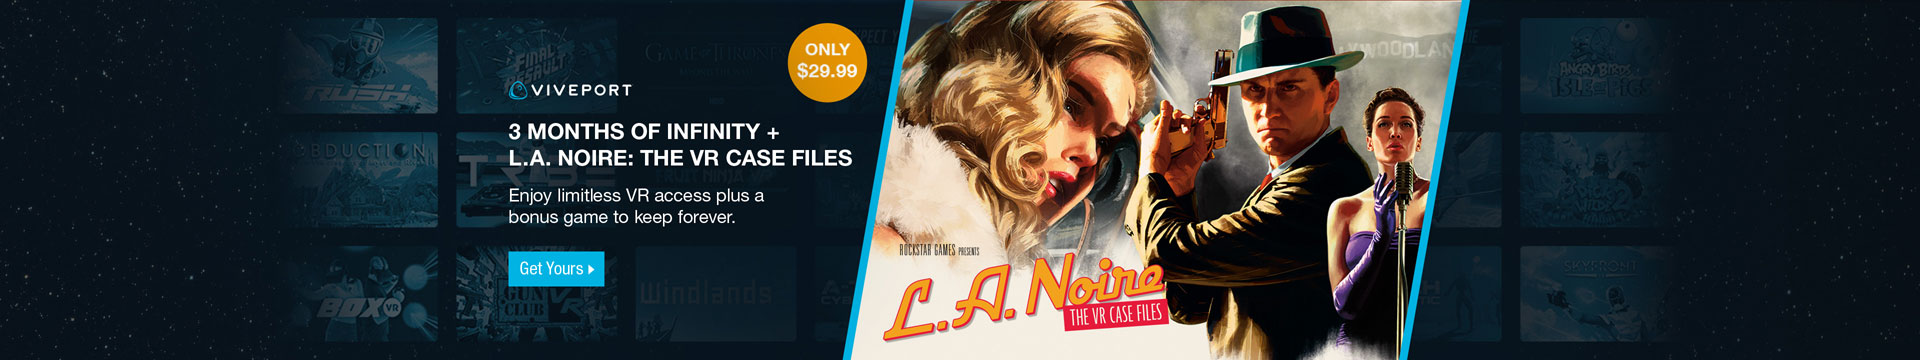 3 Months of Infinity + L.A. Noire: The VR Case Files